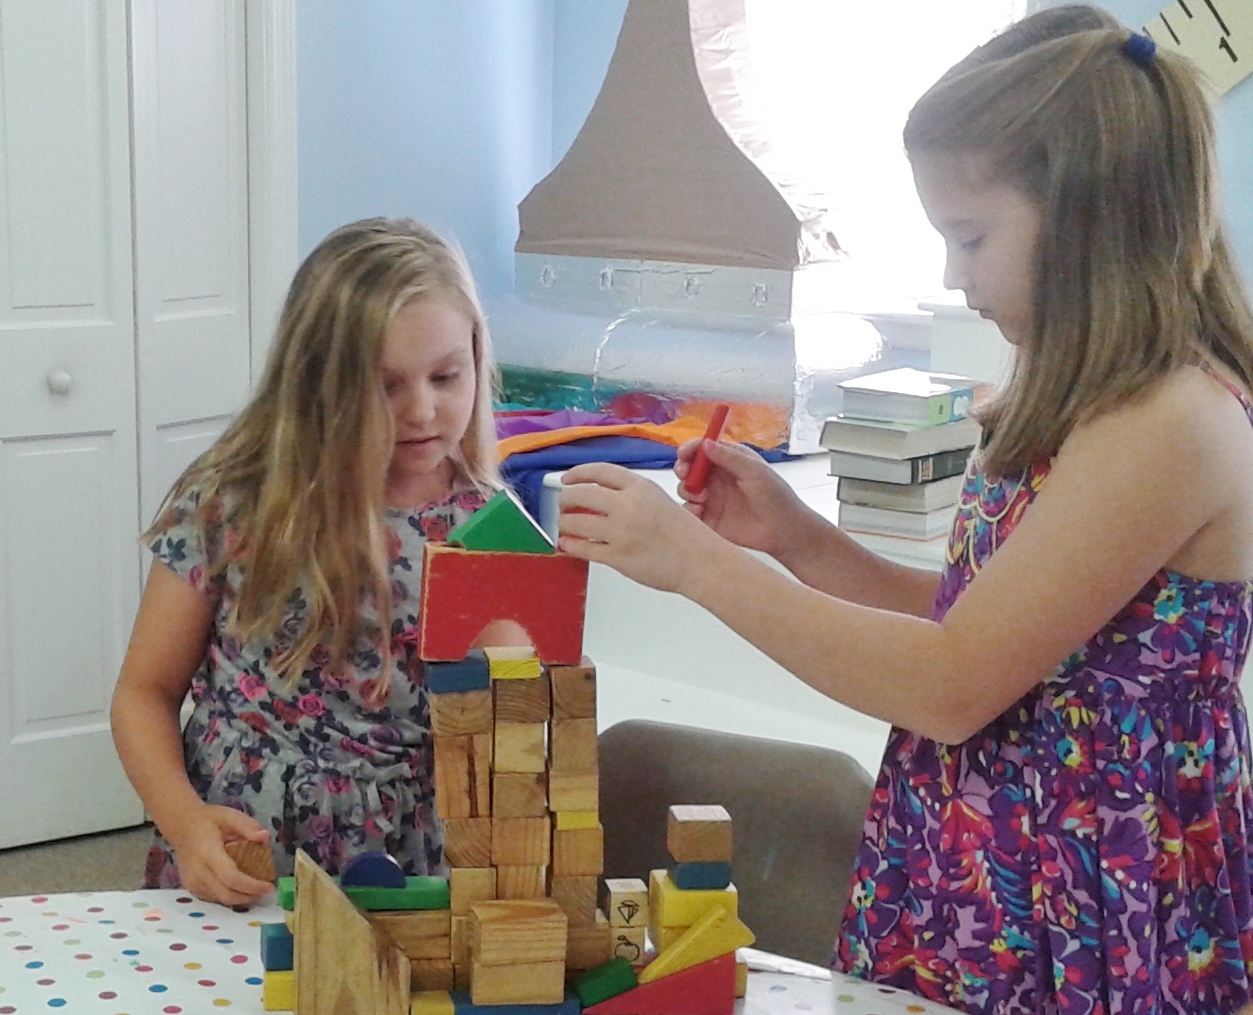 Charlotte and EllieLegette are working on their tower.